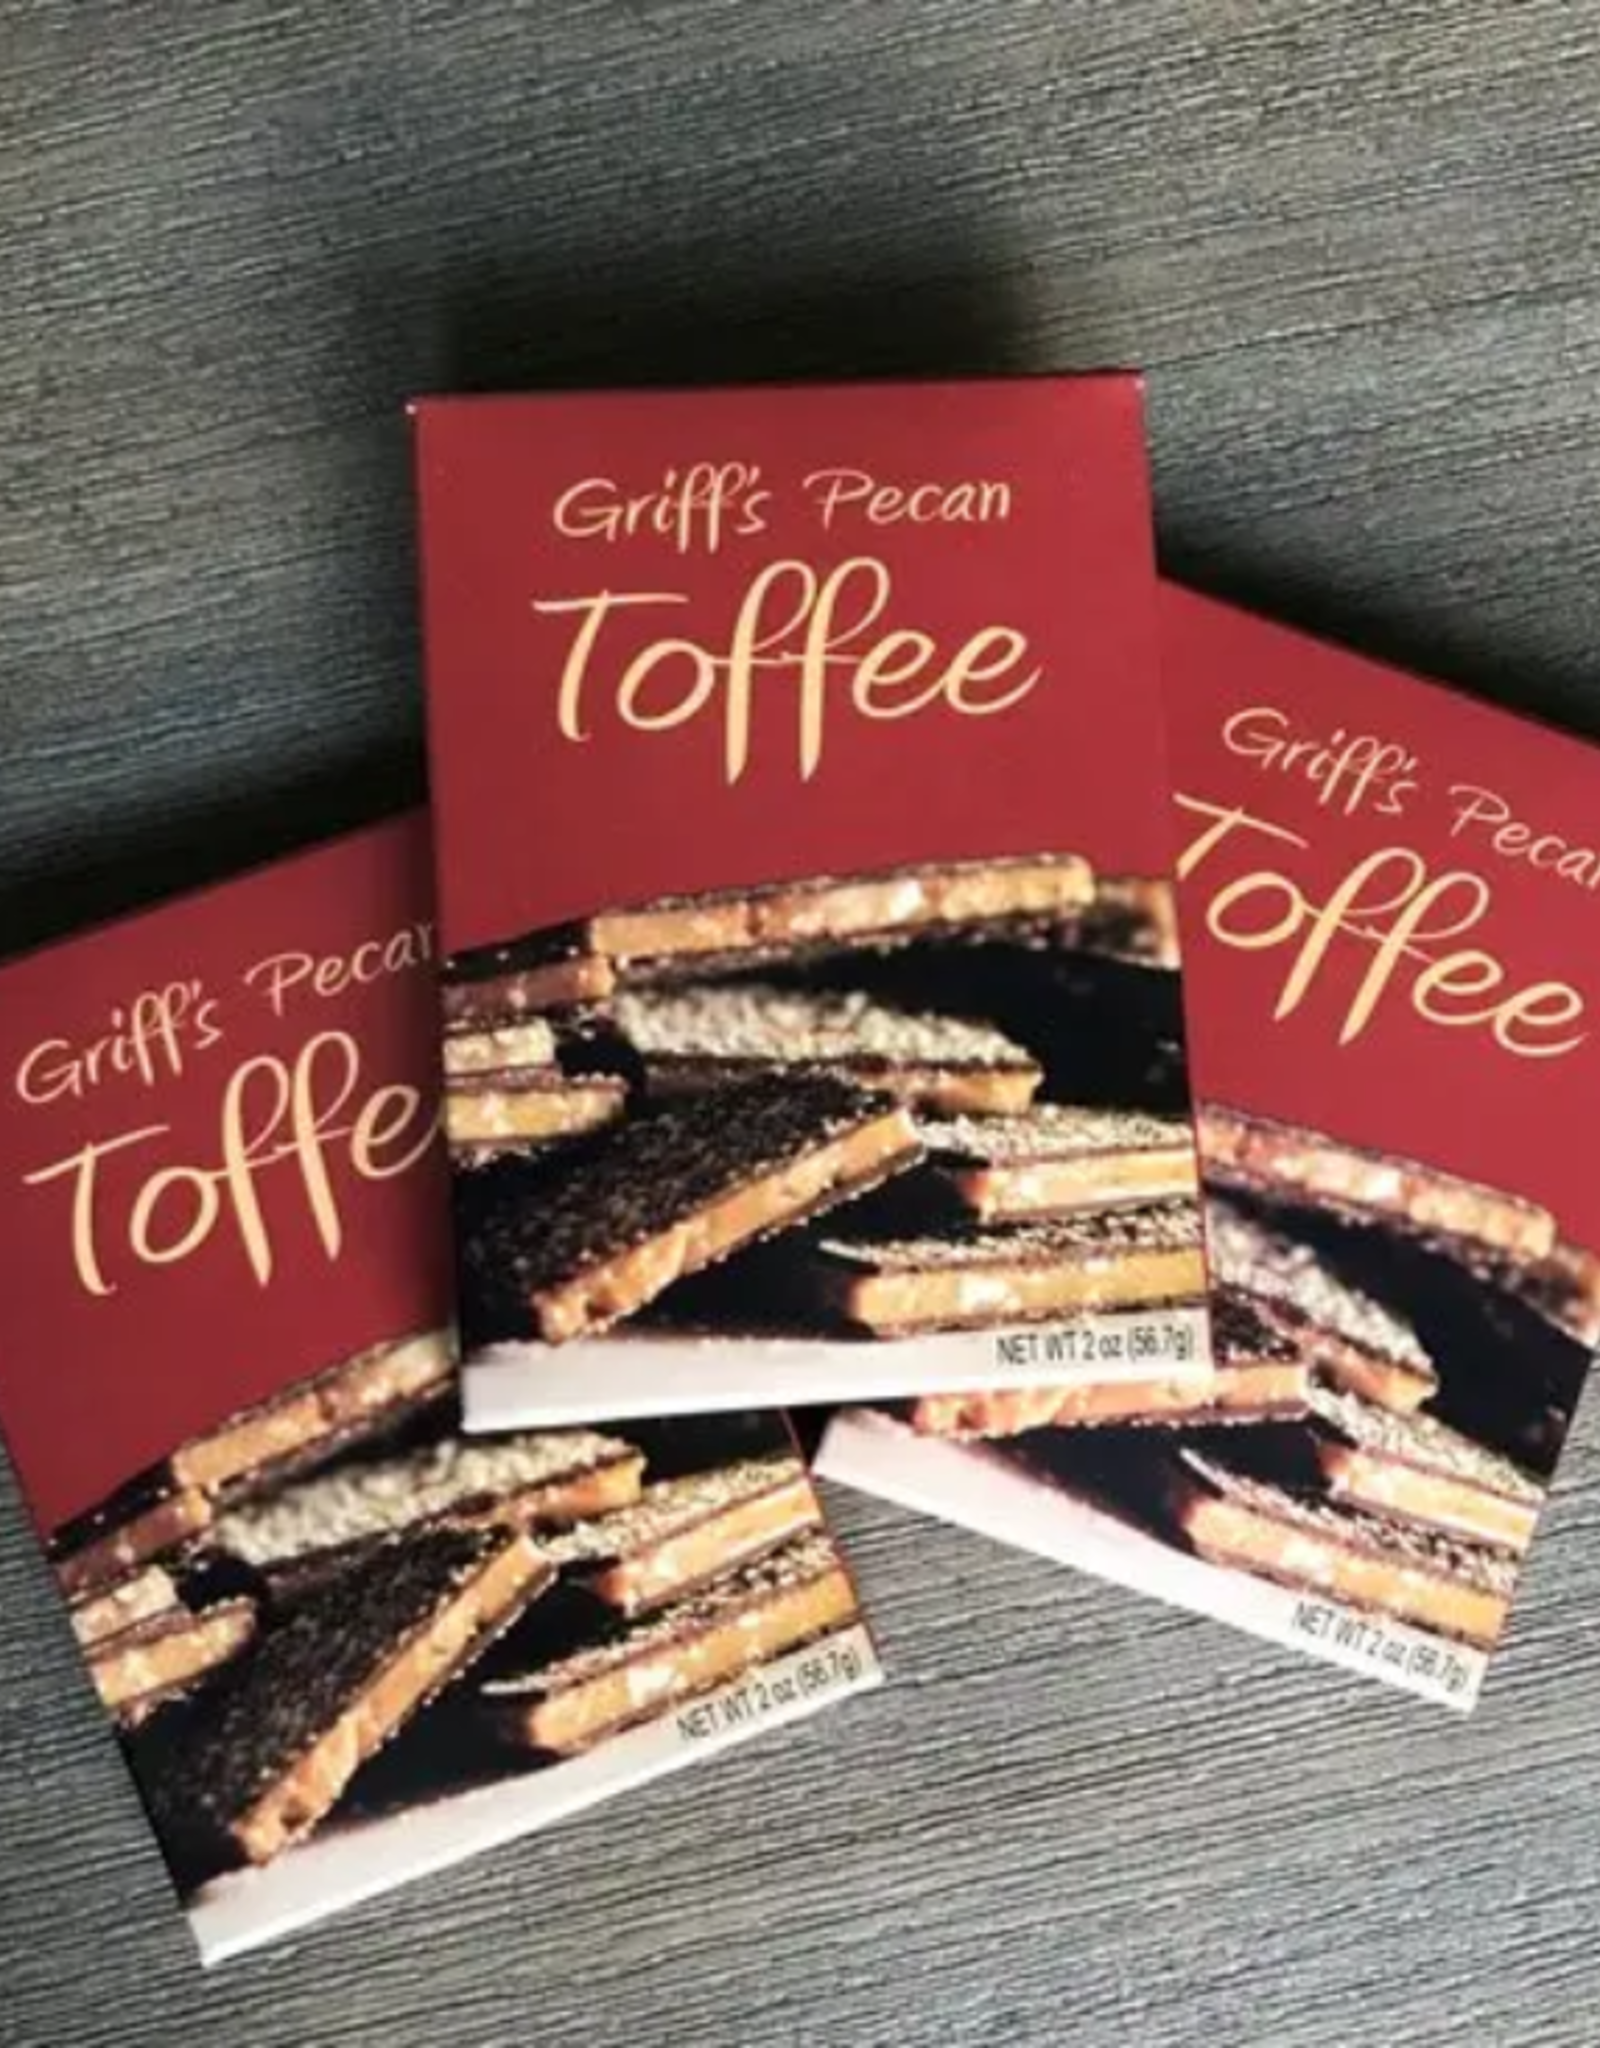 Griff's Toffee Griff's Pecan Toffee 2 oz